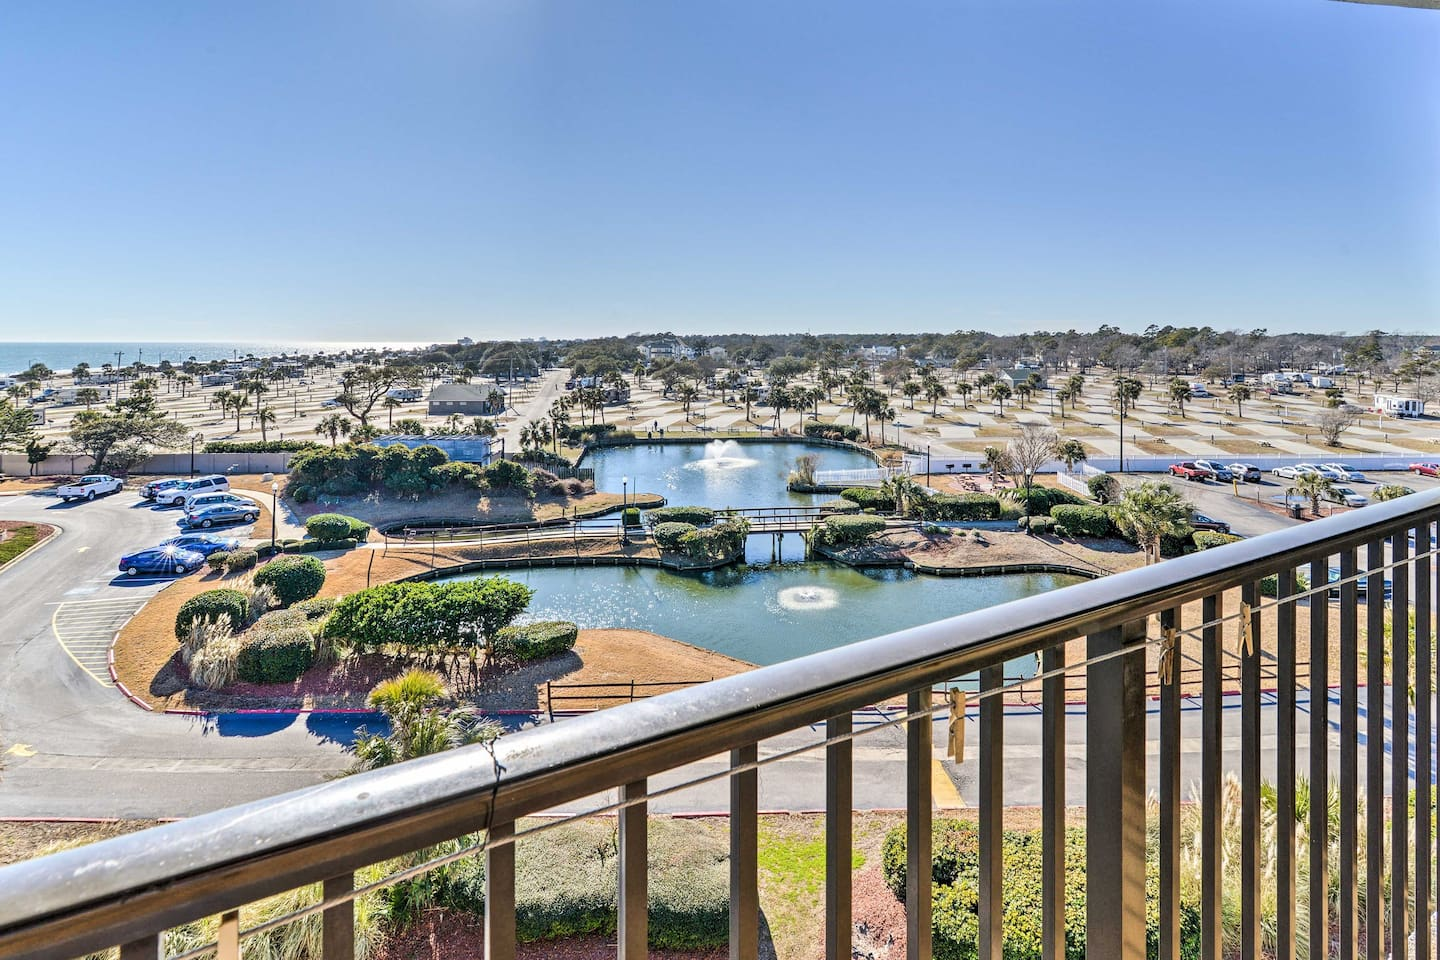 Maximize your next trip to Myrtle Beach and book this vacation rental condo!